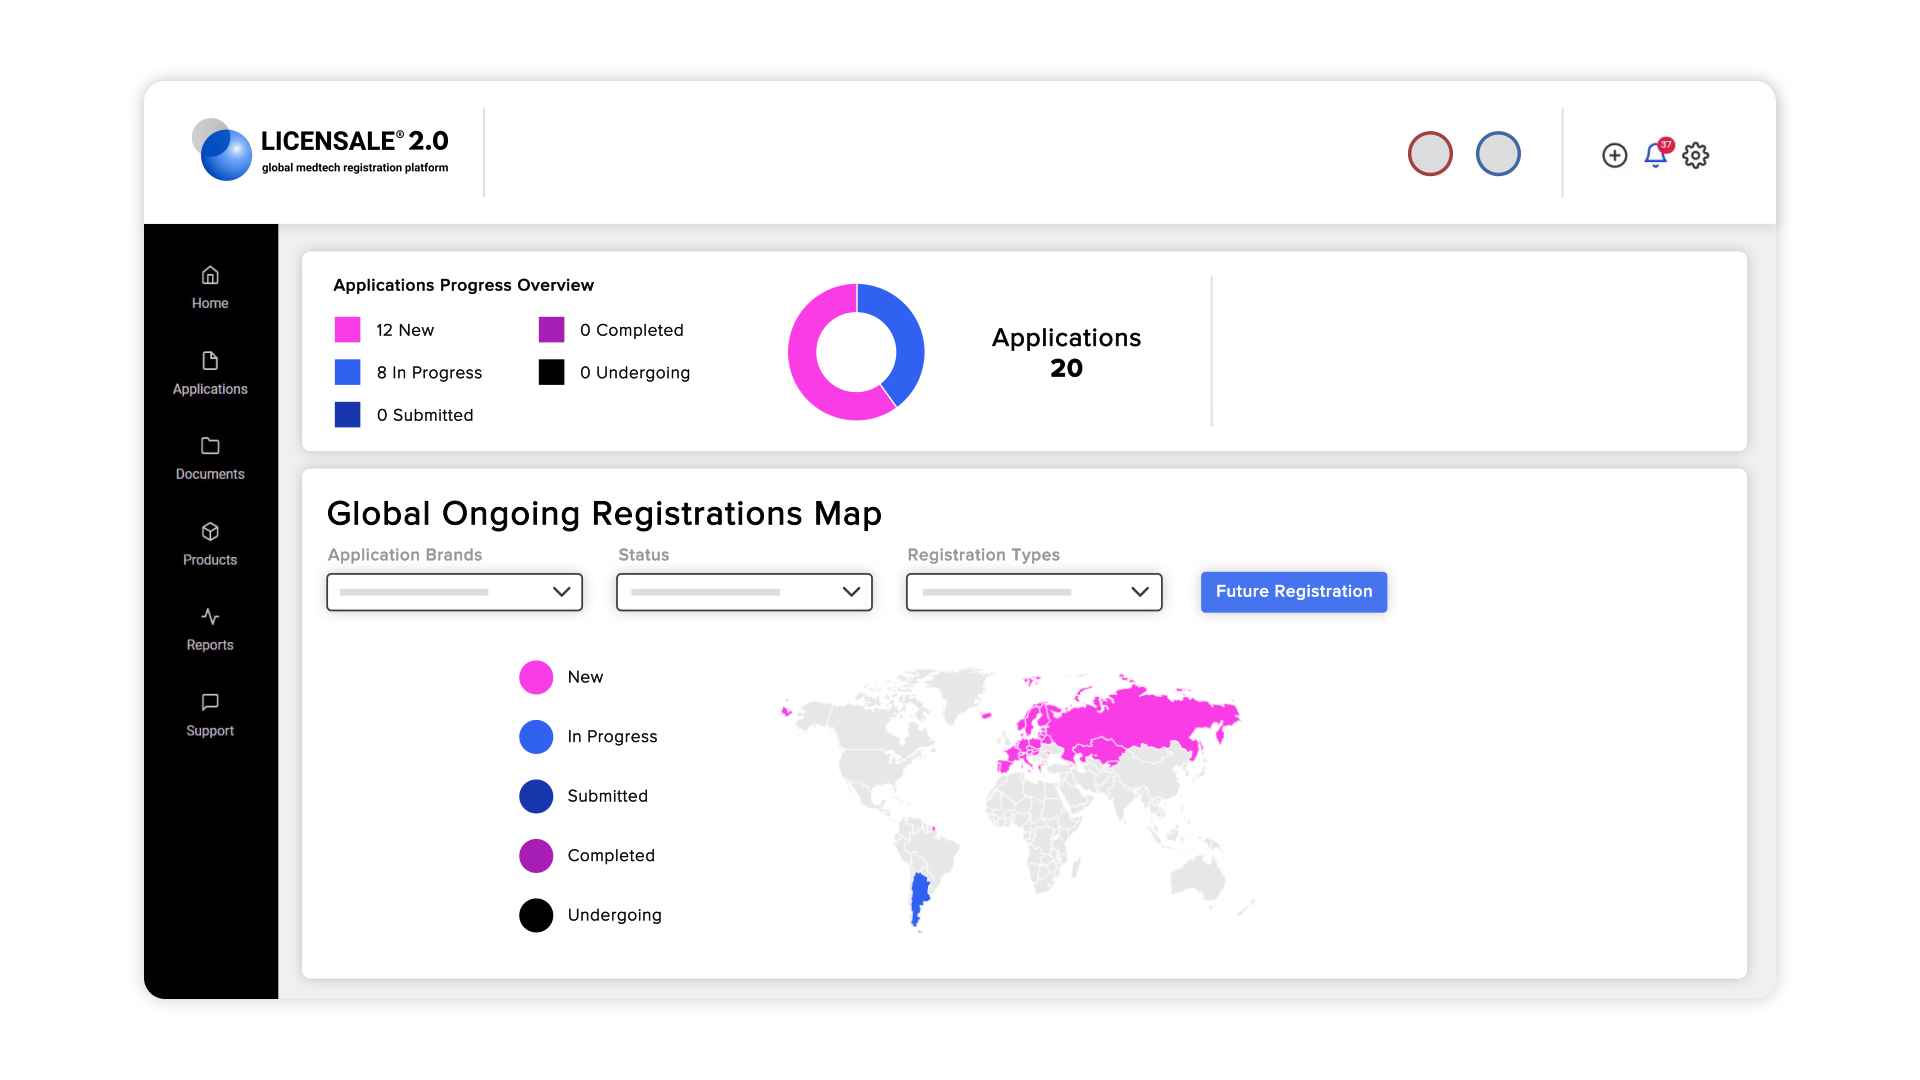 dashboard showing global map with ongoing registration process tracking on LICENSALE 2.0 - Medical Device Registration Software